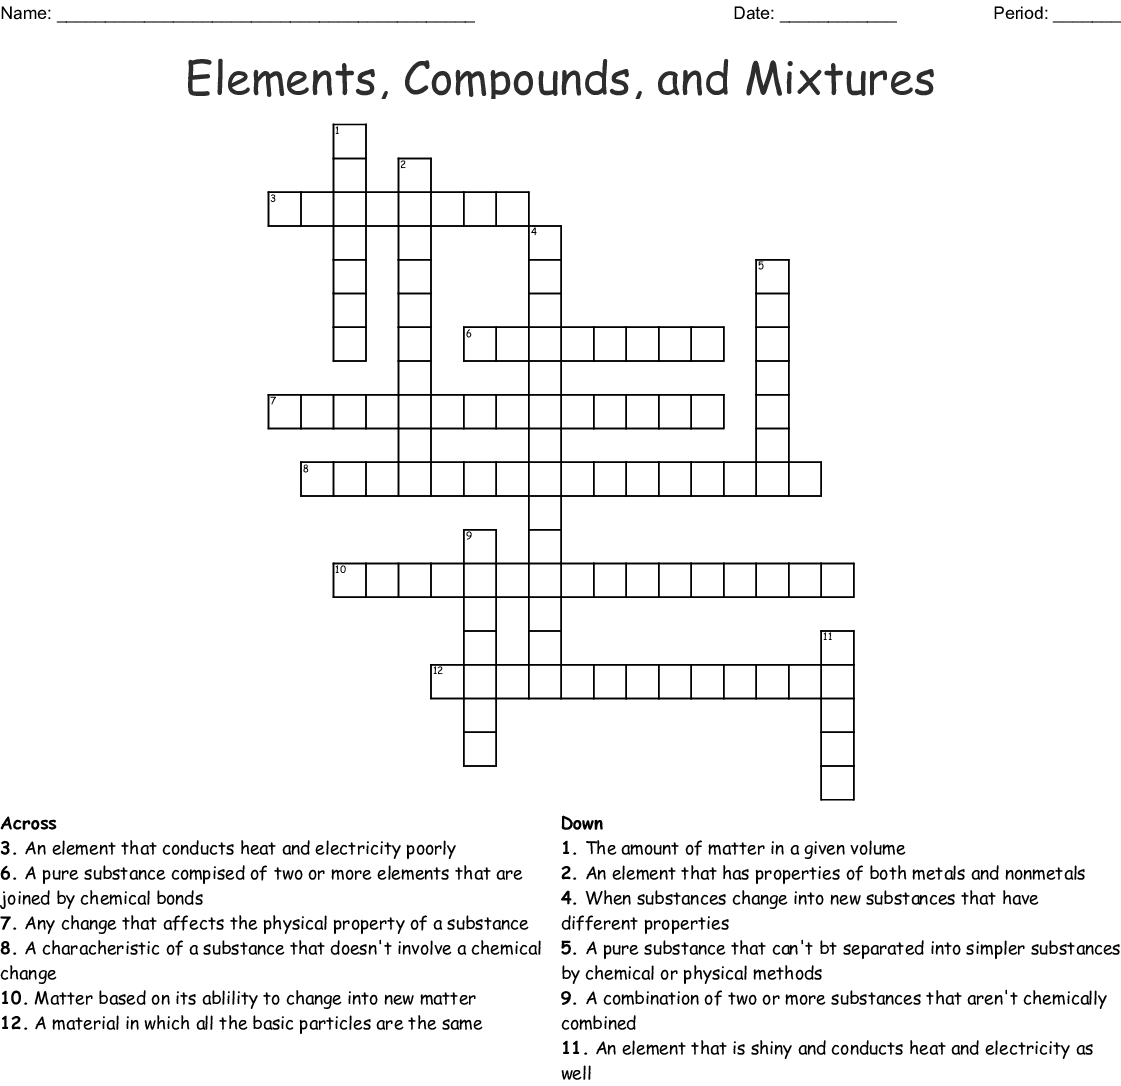 Elements, Compounds, and Mixtures Crossword - WordMint